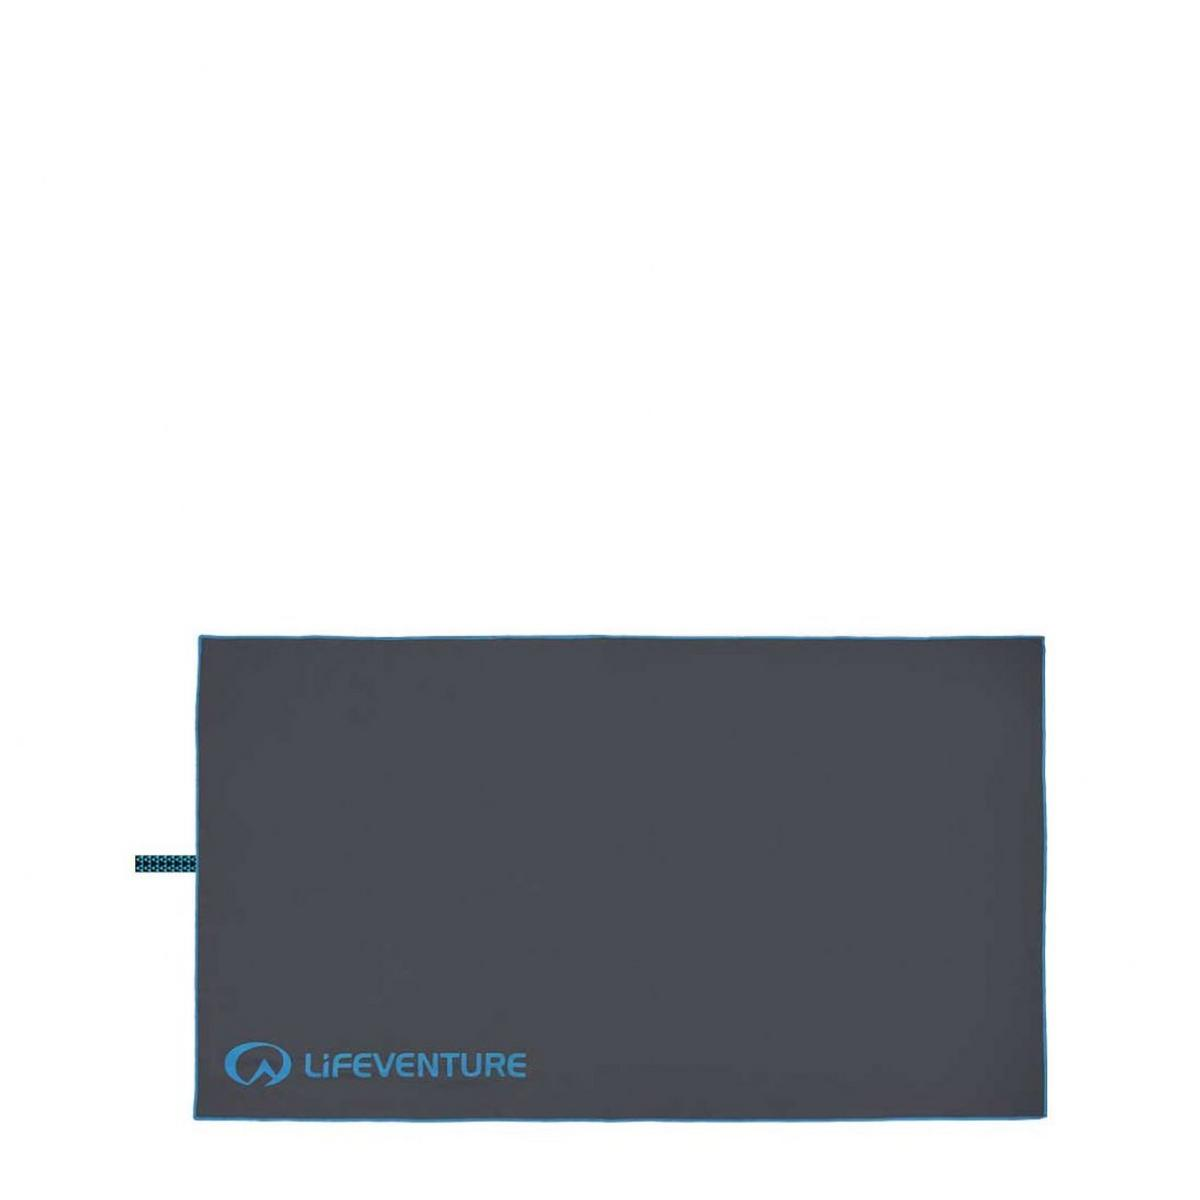 Lifeventure Recycled SoftFibre Towel Large - Grey